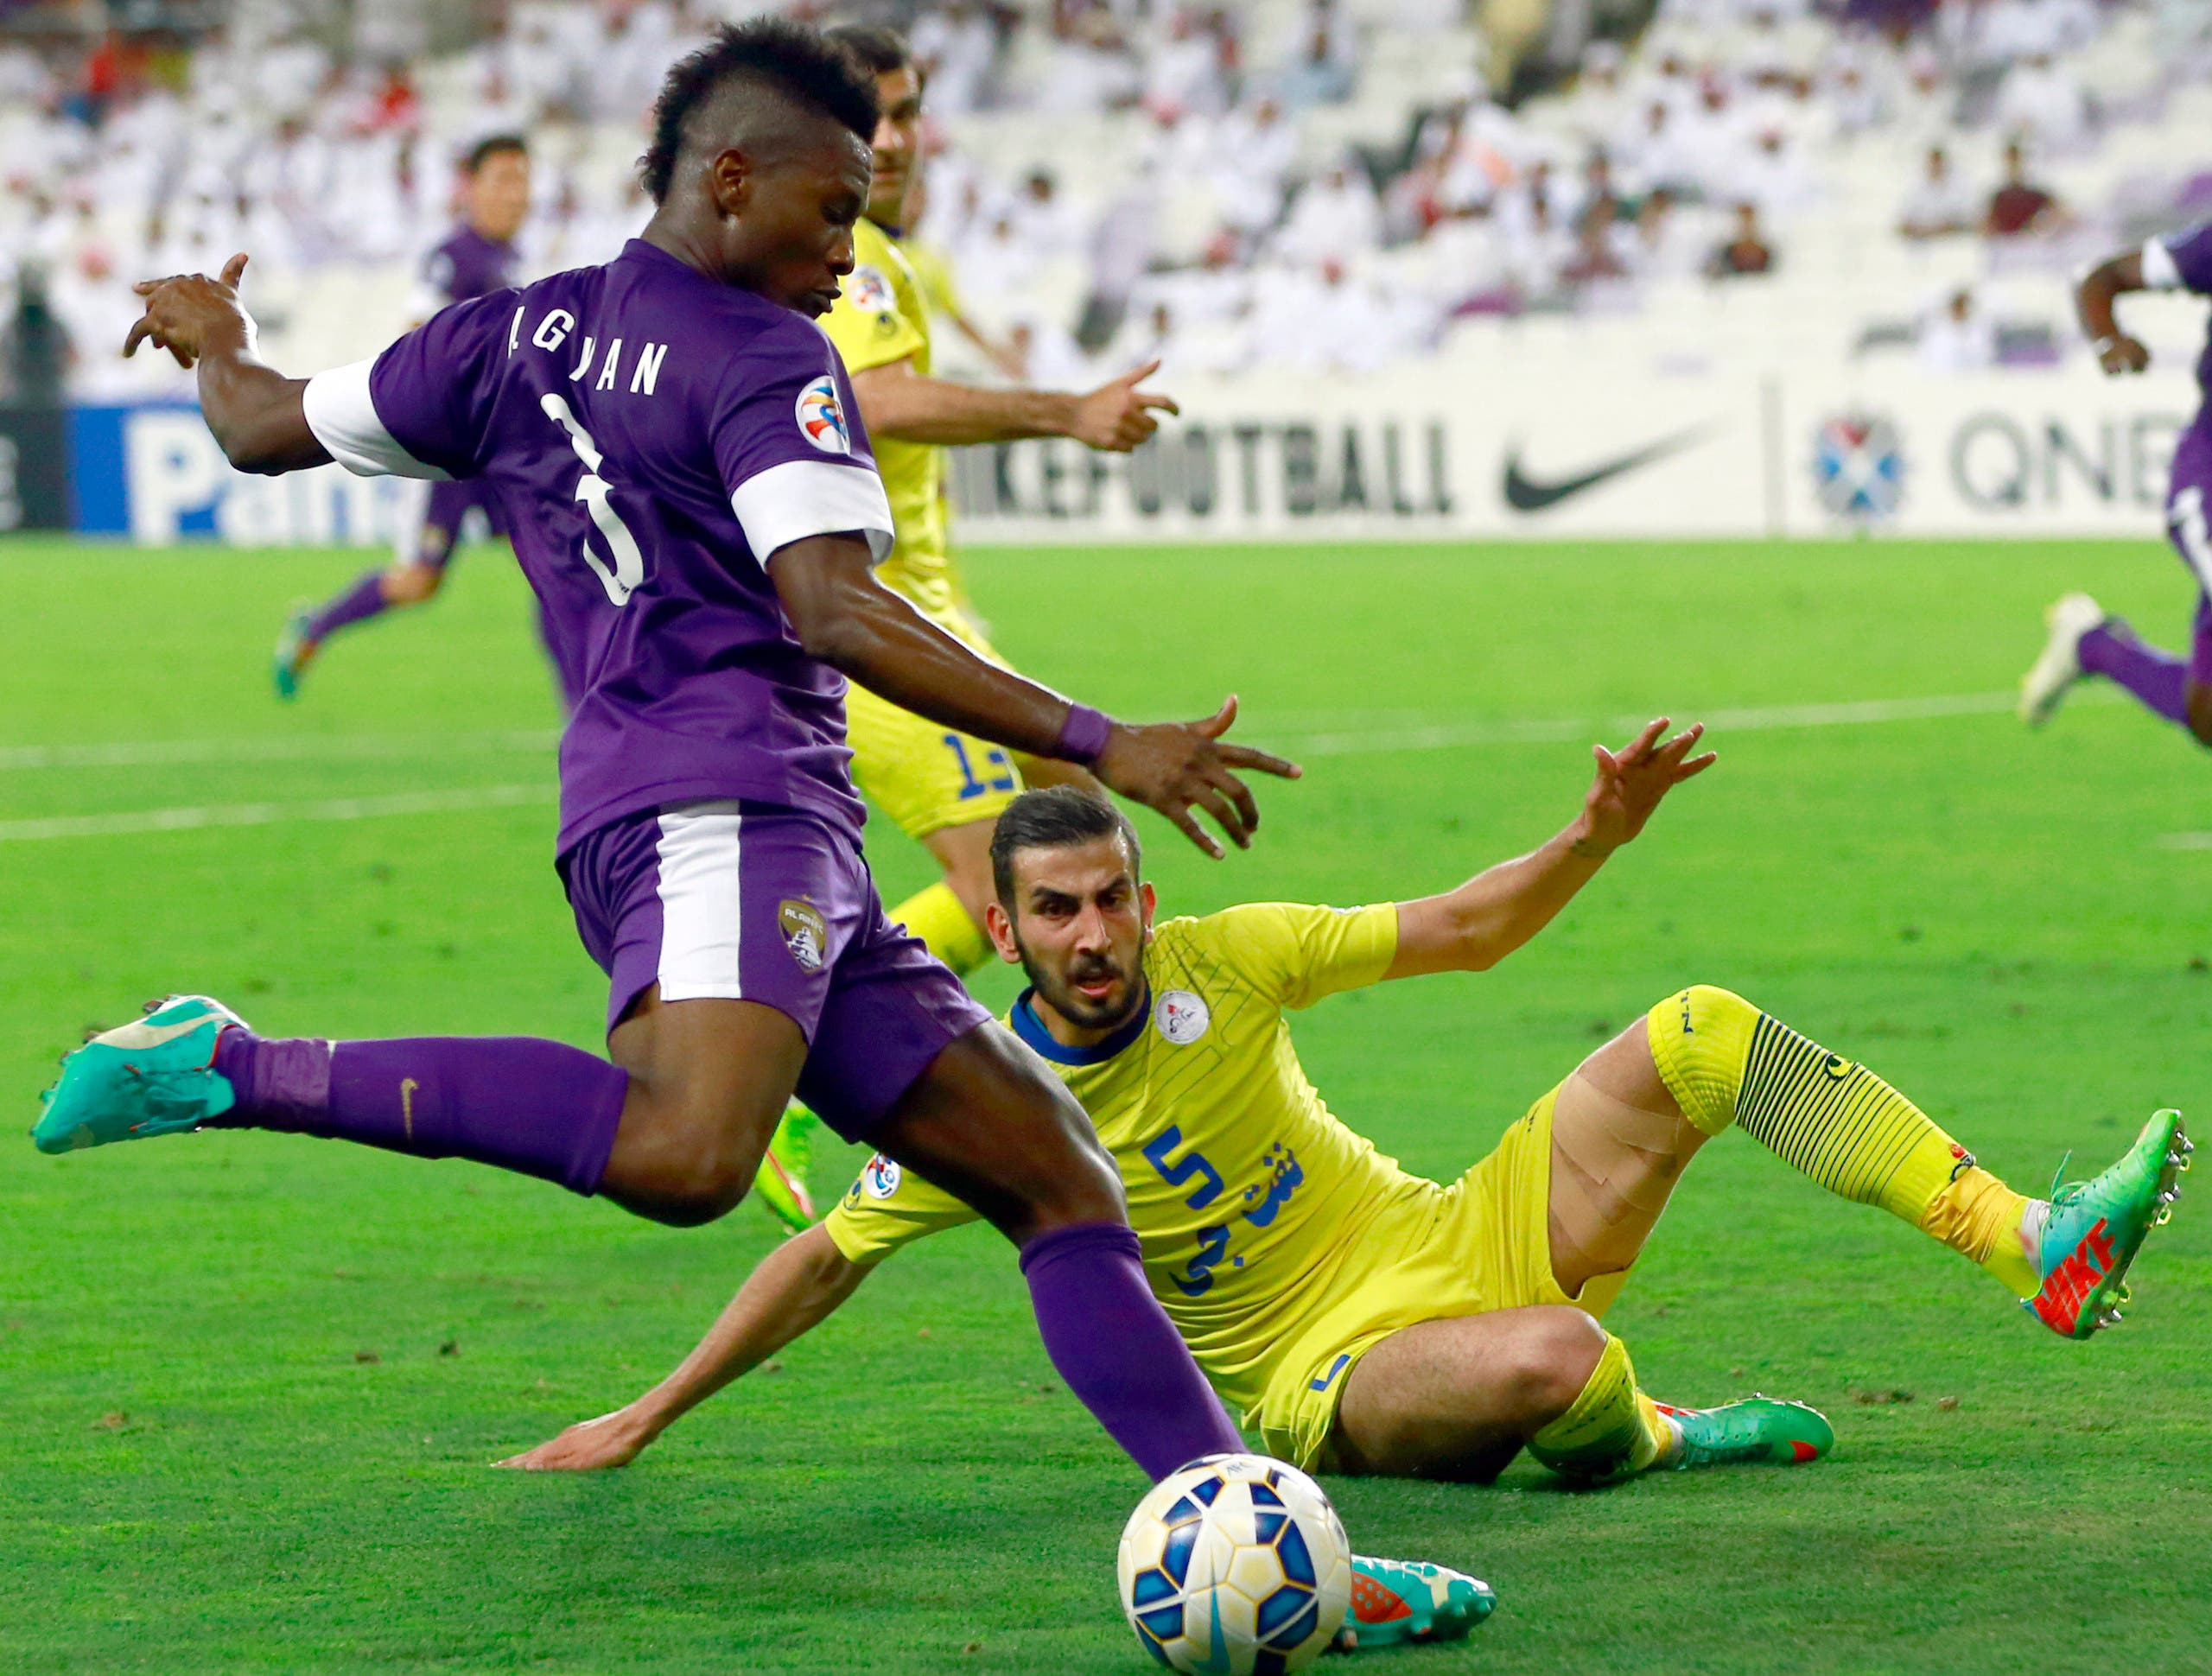 Al-Ain's Asamoah Gyan (L) fights for the ball with Naft's Amin Hajmohammadi (R) during their AFC Champions League Group B football match Iran's Naft Tehran against UAE's Al-Ain at Sheik Hazza Bin Zayed stadium on May 6, 2015 in Al-Ain. AFP